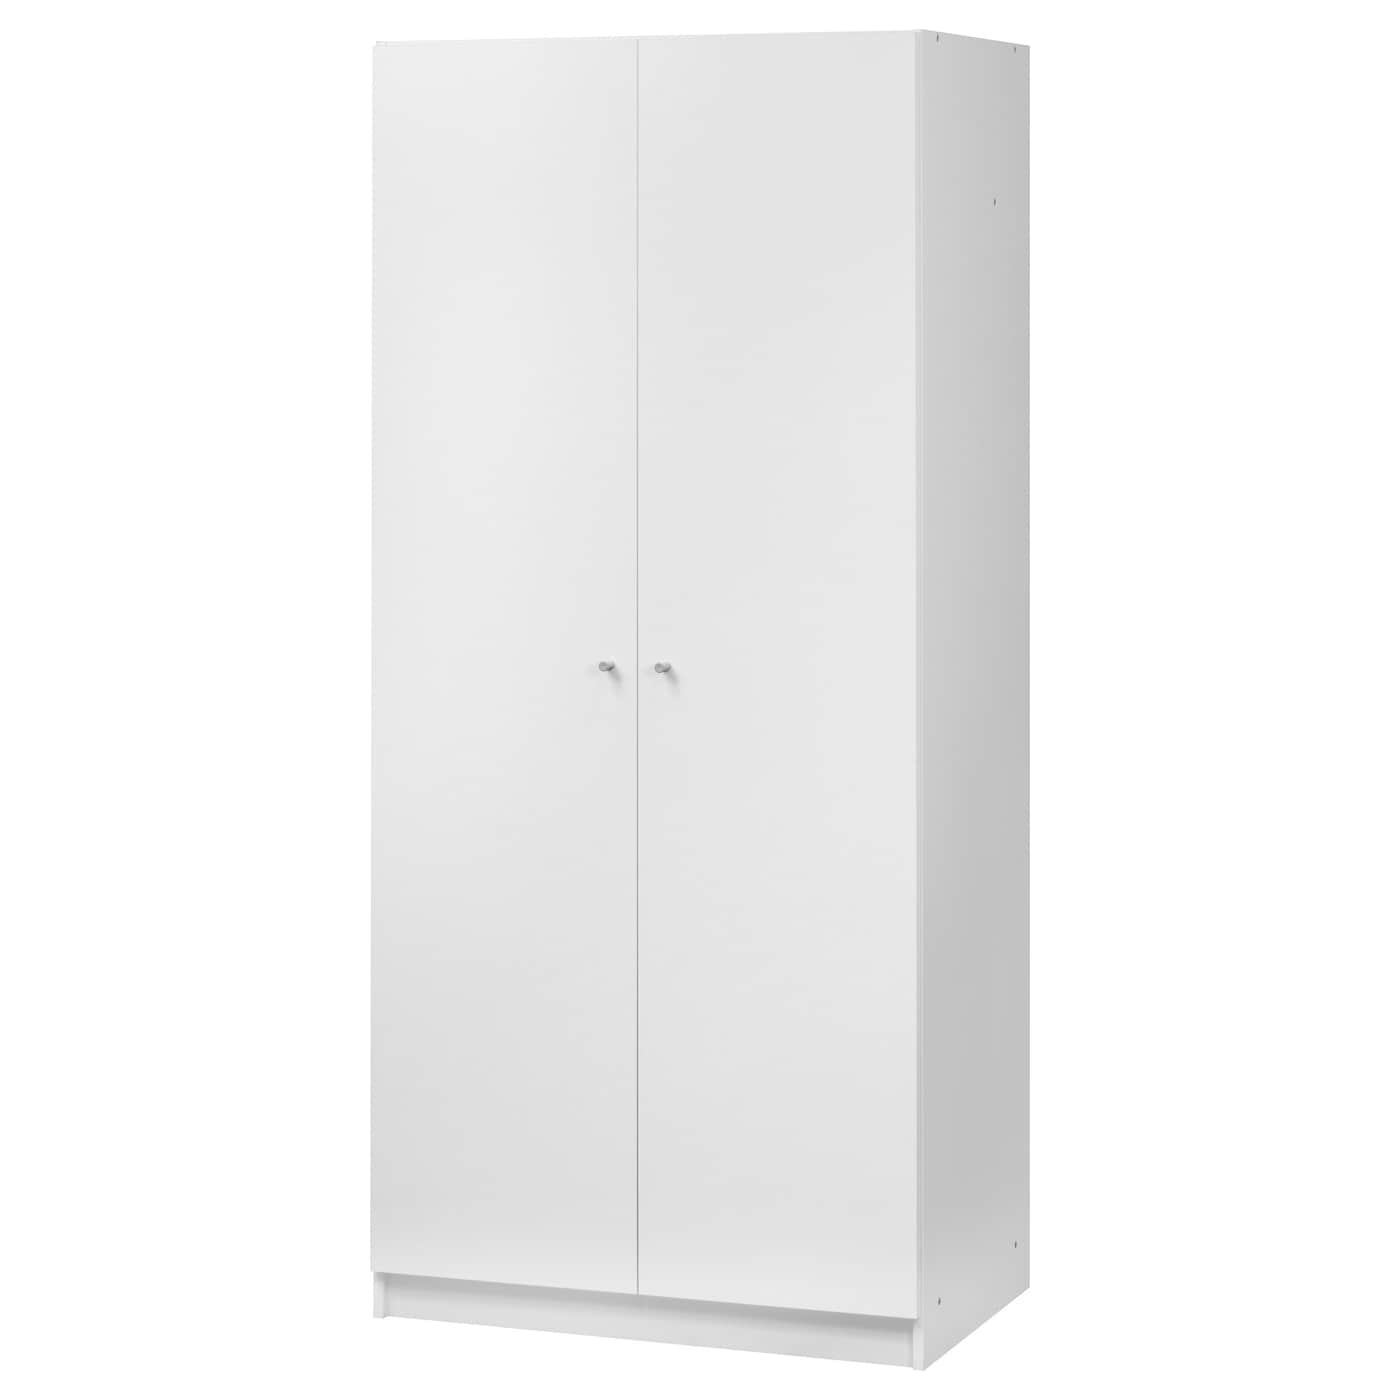 bostrak armoire penderie blanc 80x50x180 cm ikea. Black Bedroom Furniture Sets. Home Design Ideas